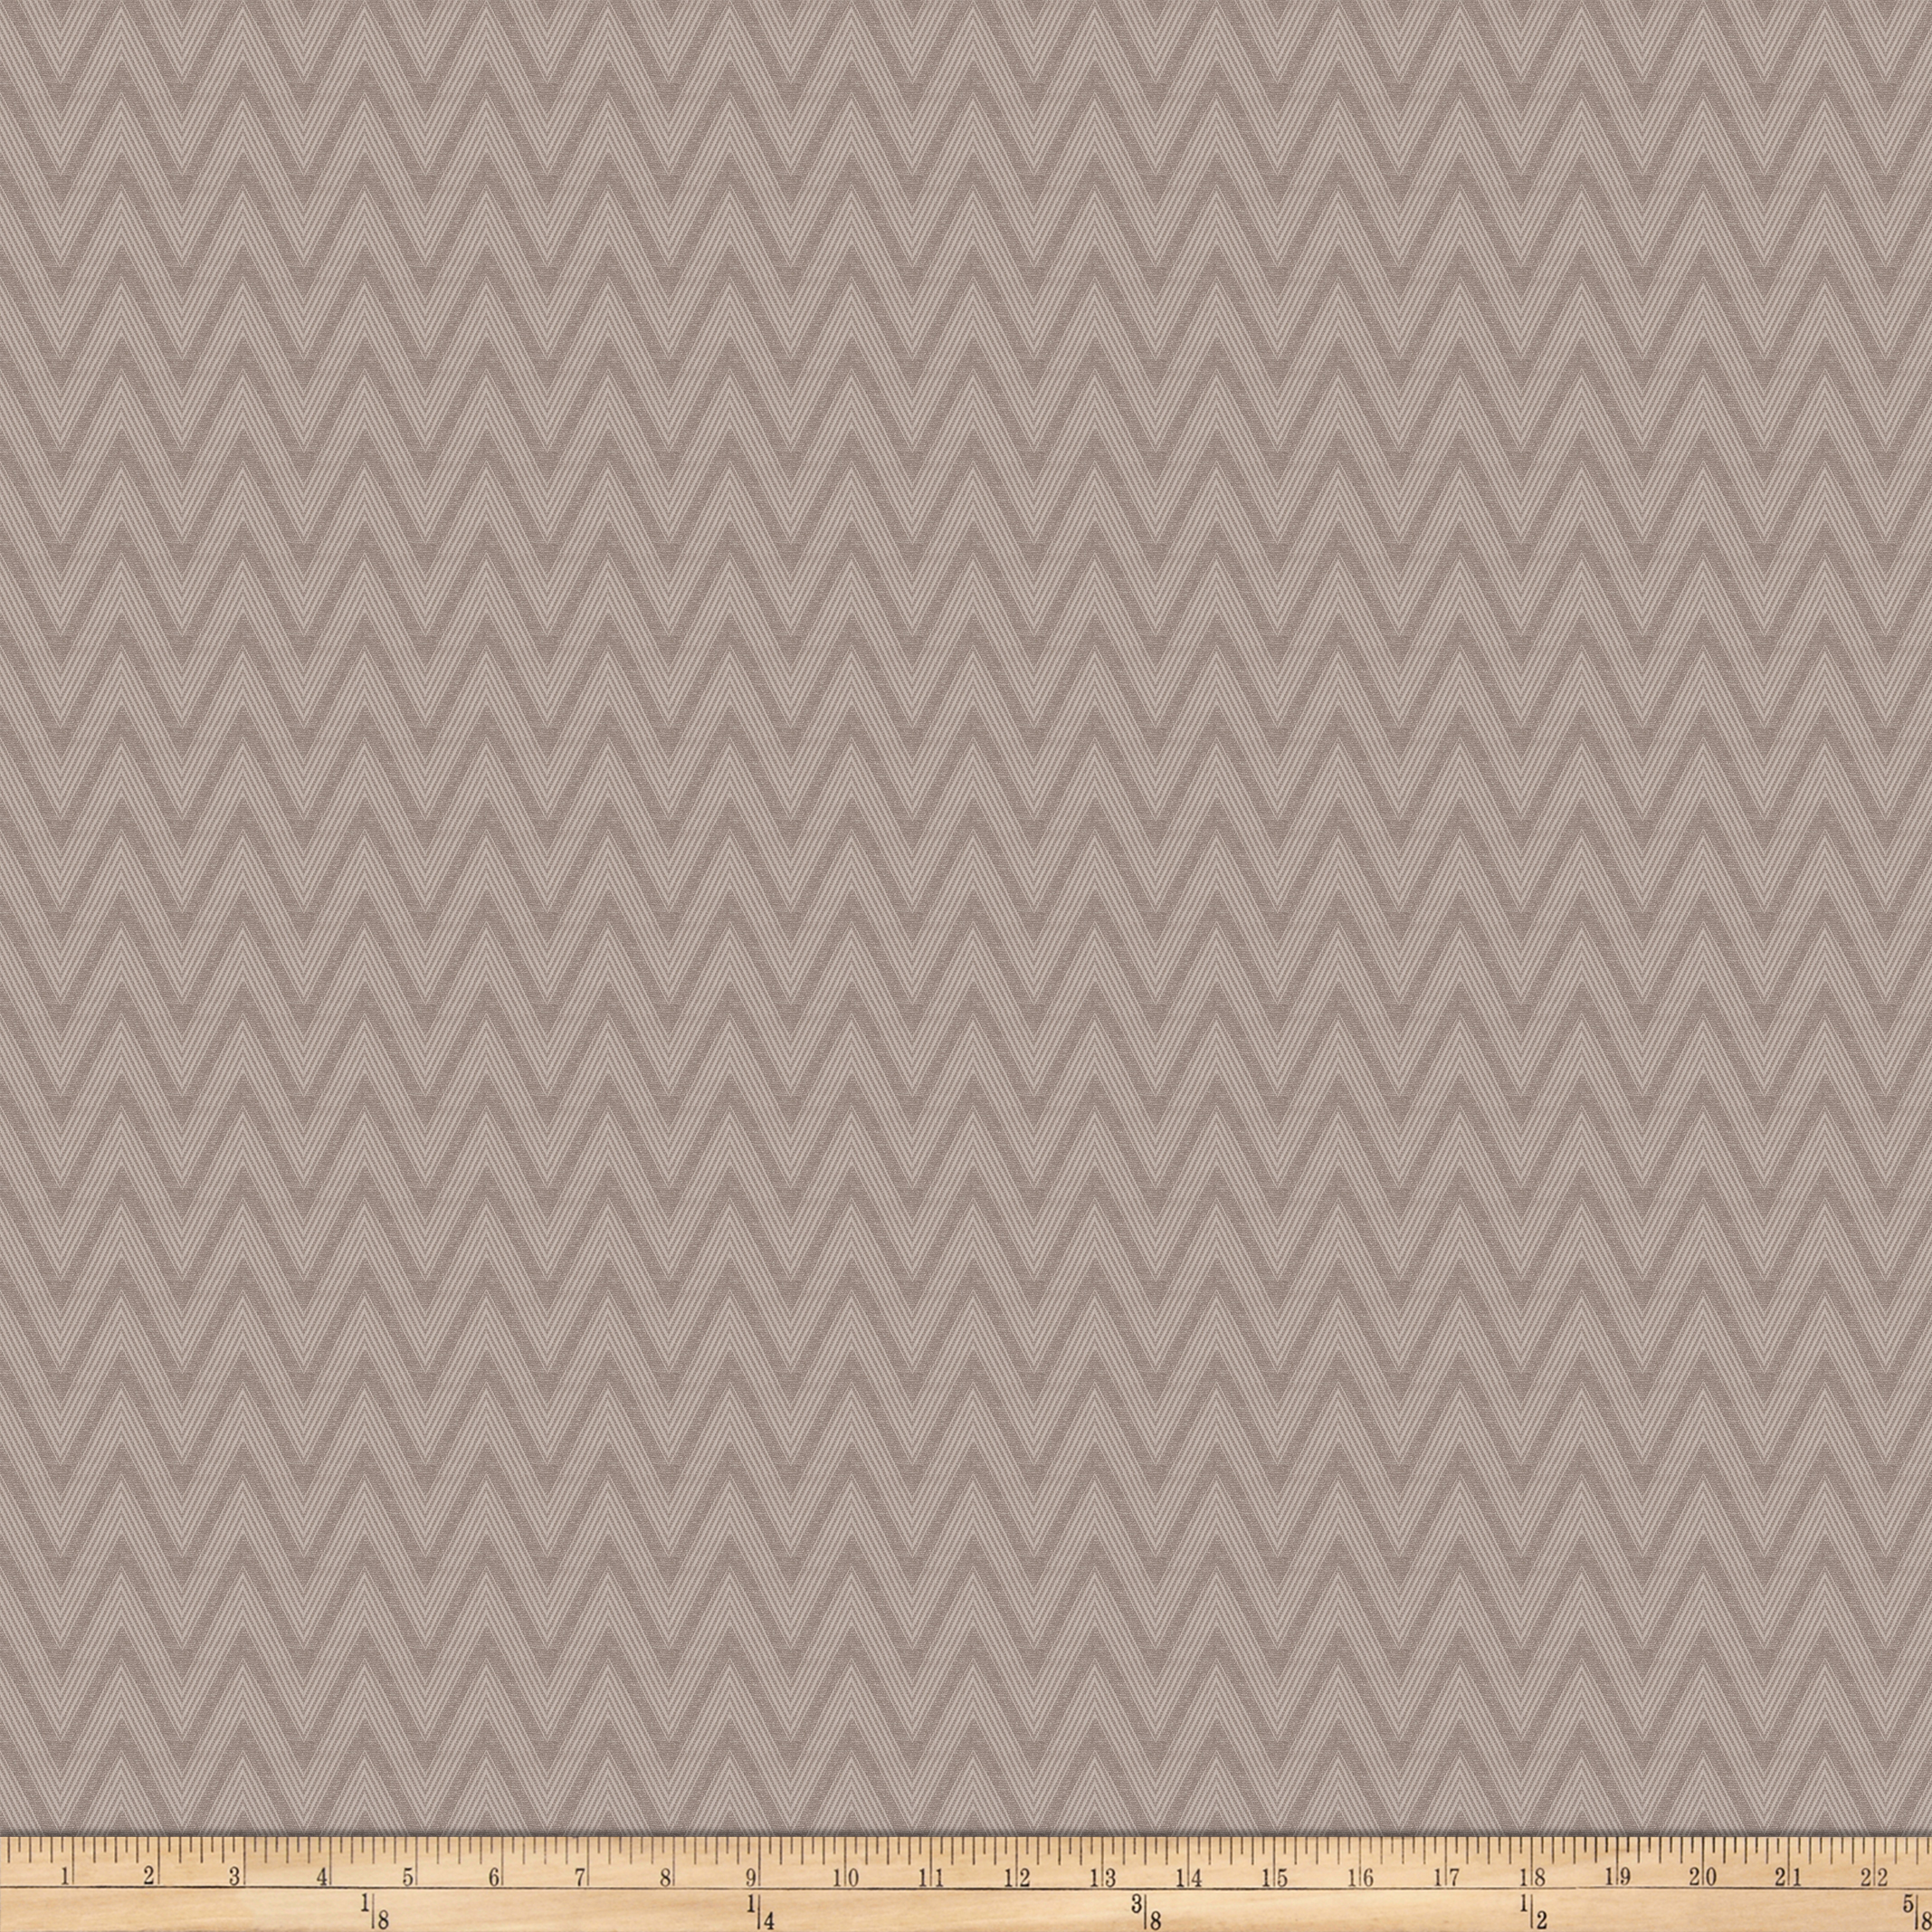 Vern Yip 03358 Jacquard Chevron Grey Fabric